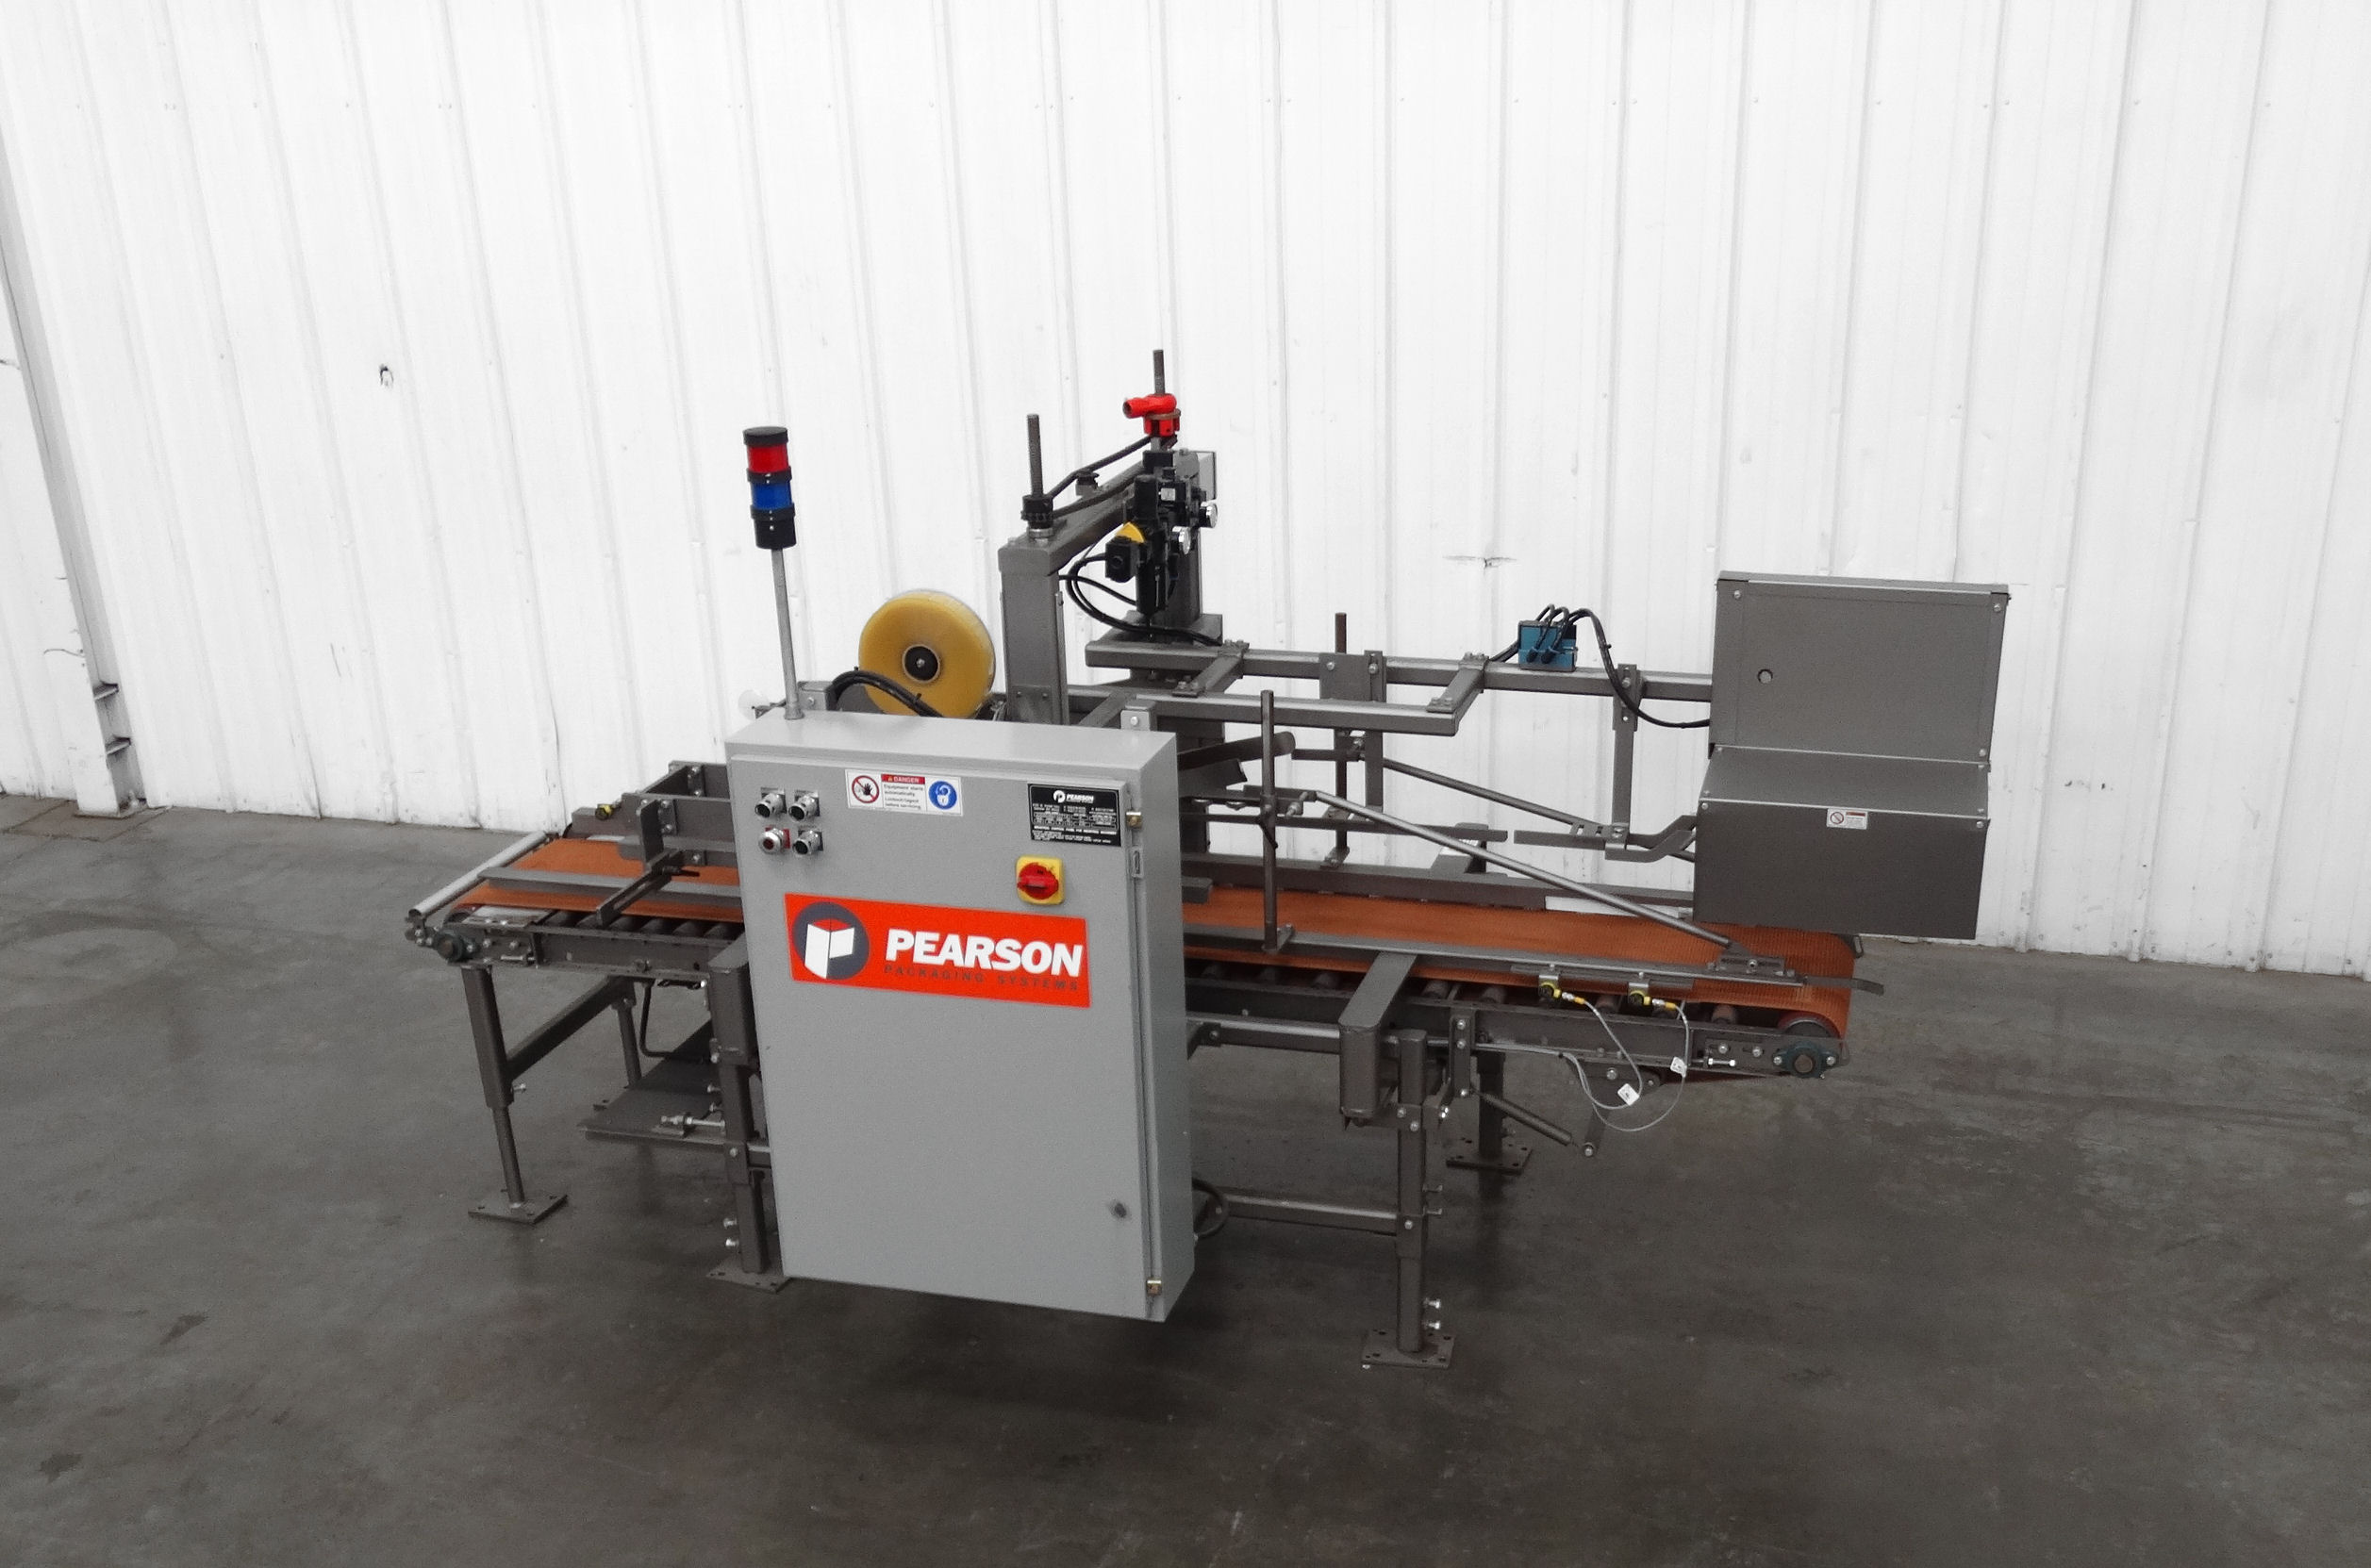 Pearson N401-IT Top Case Sealer B4395 - Image 5 of 12